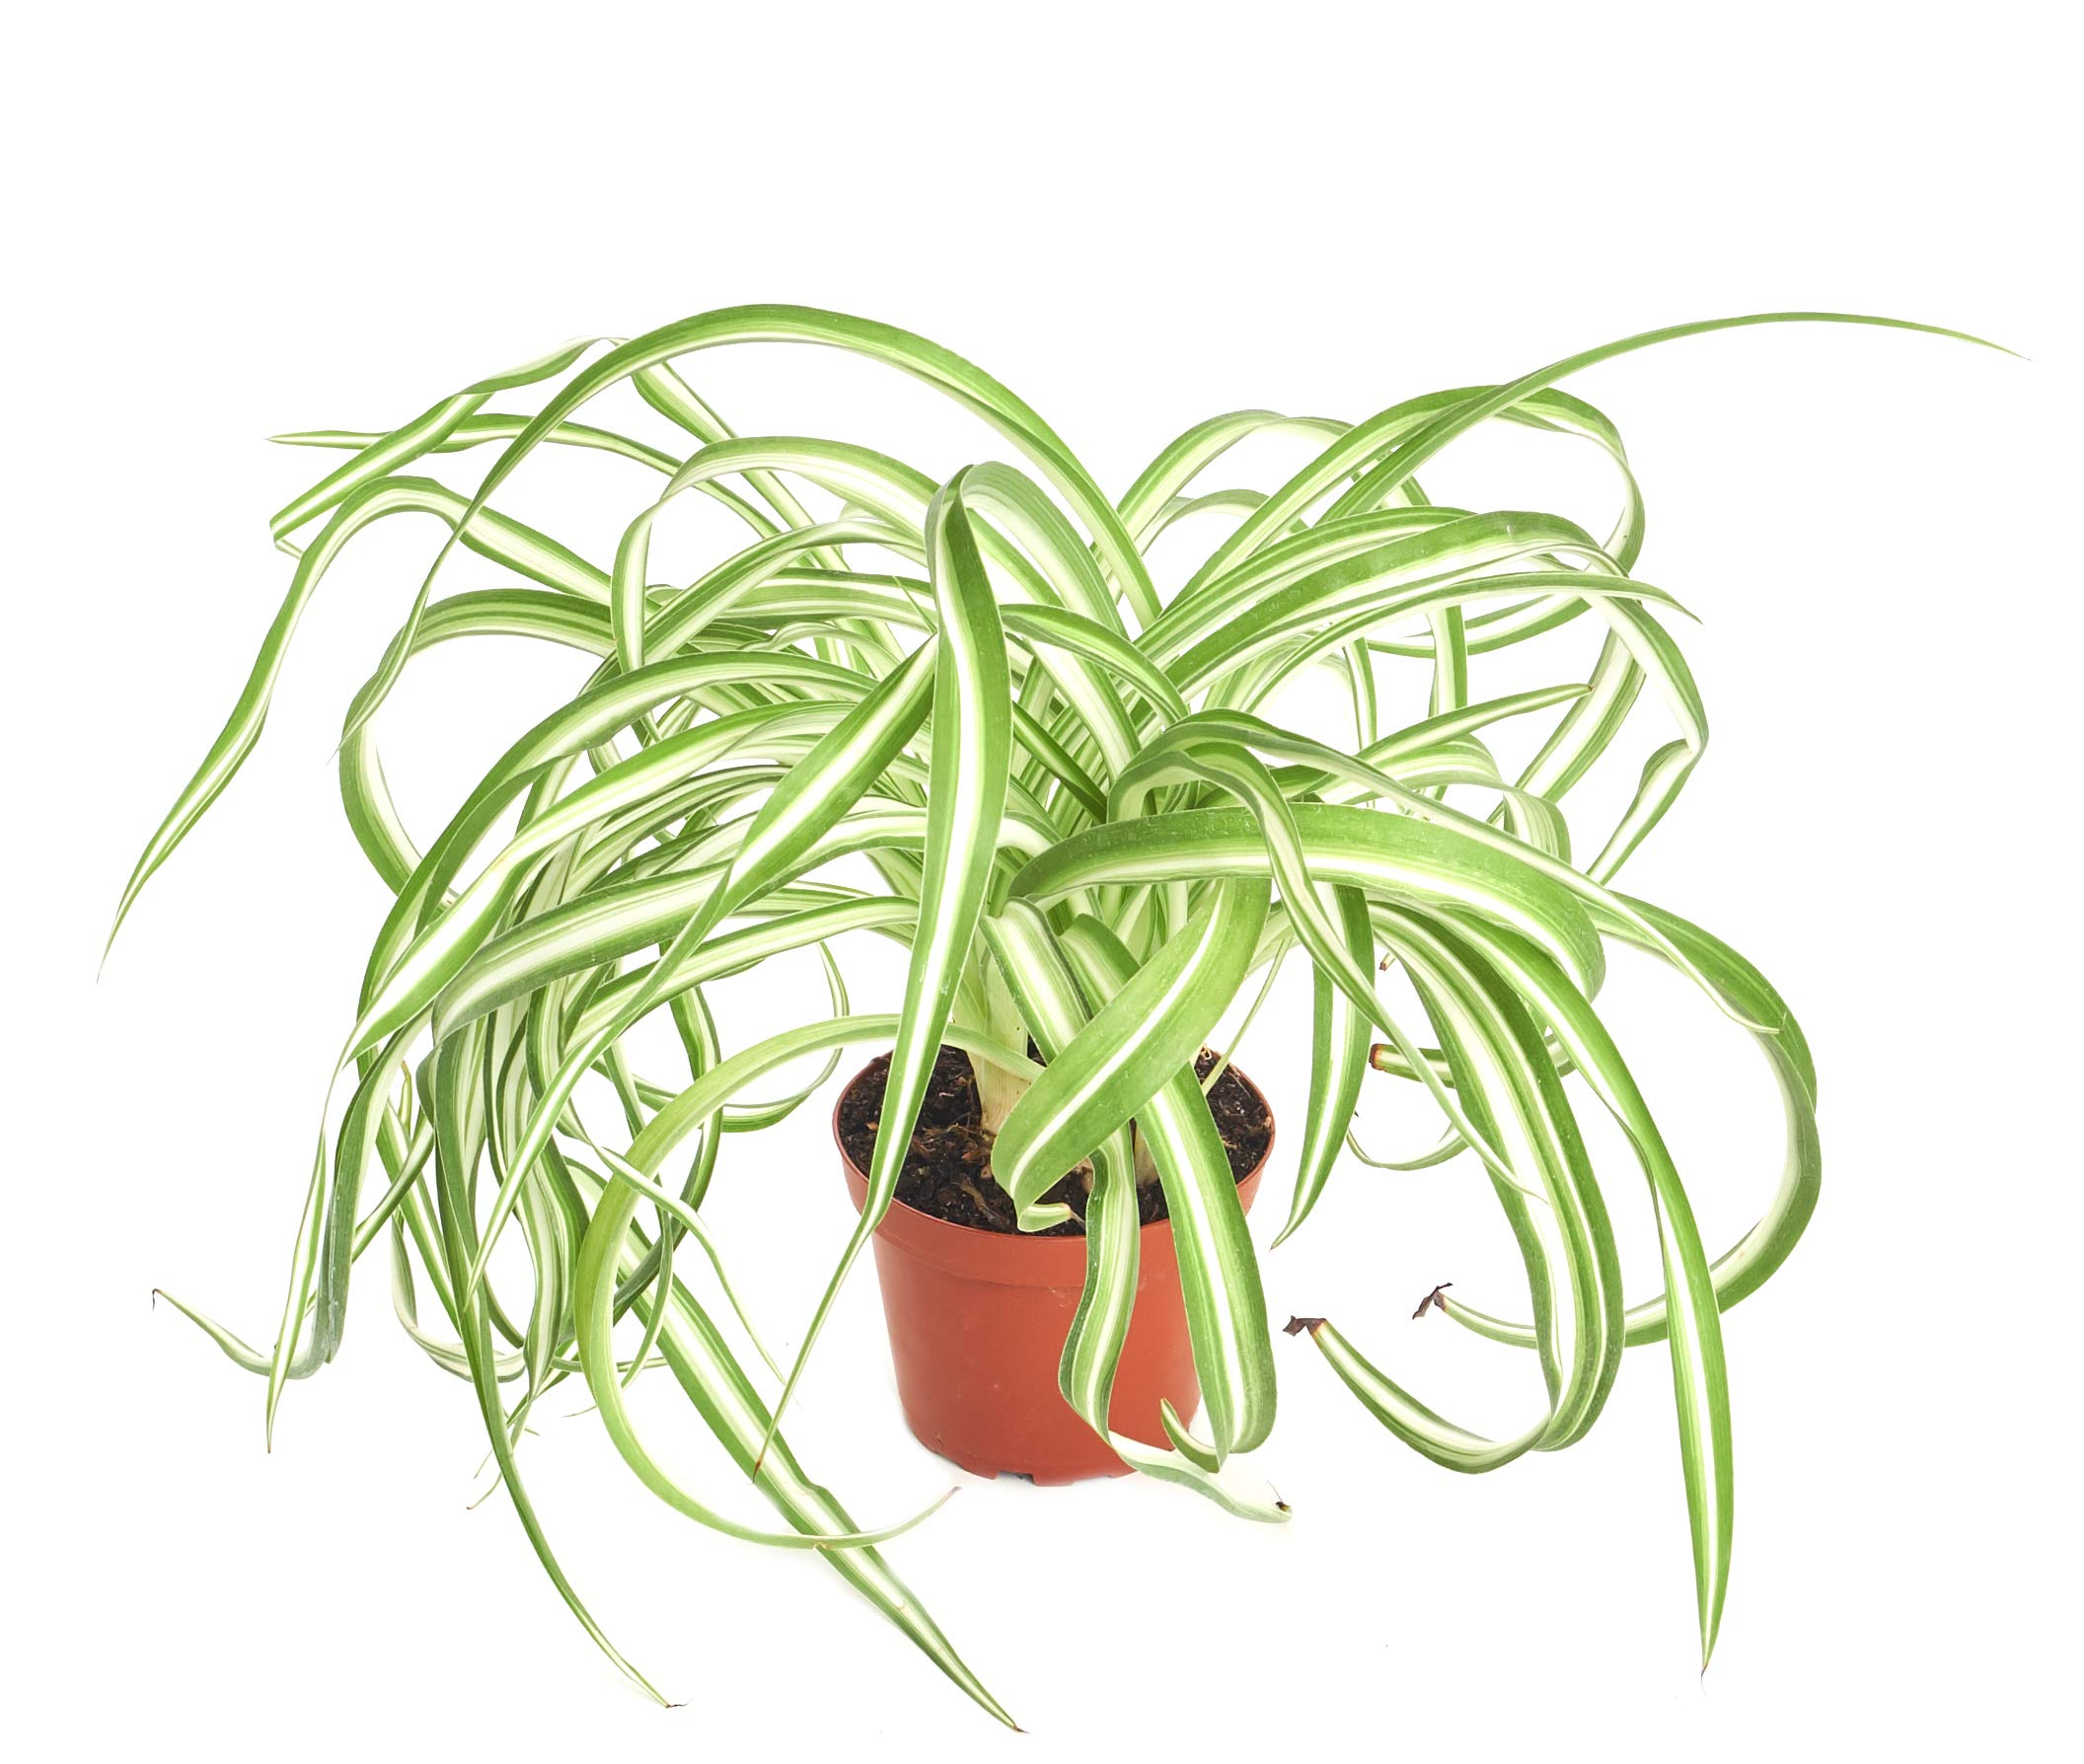 Shop Succulents | 'Bonnie' Curly Spider Plant, Naturally Air Purifying House Plant in 4'' Pot, Easy Care, Live Indoor House Plant